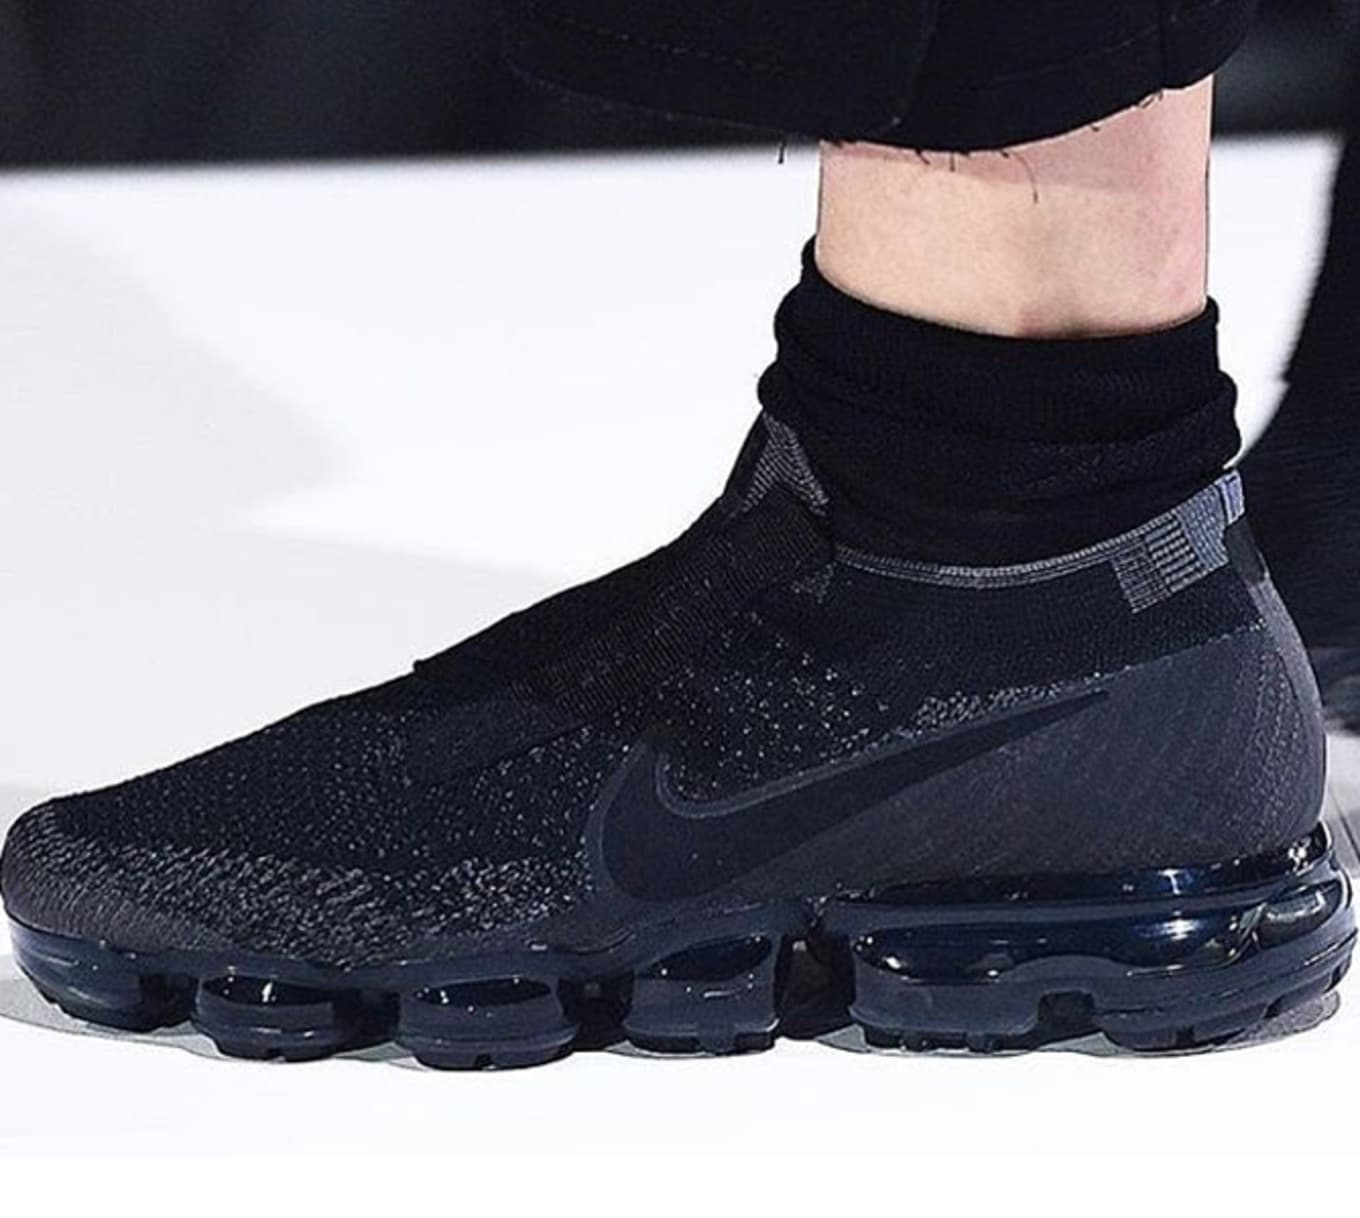 Comme Des Garcons Nike Air VaporMax | Sole Collector